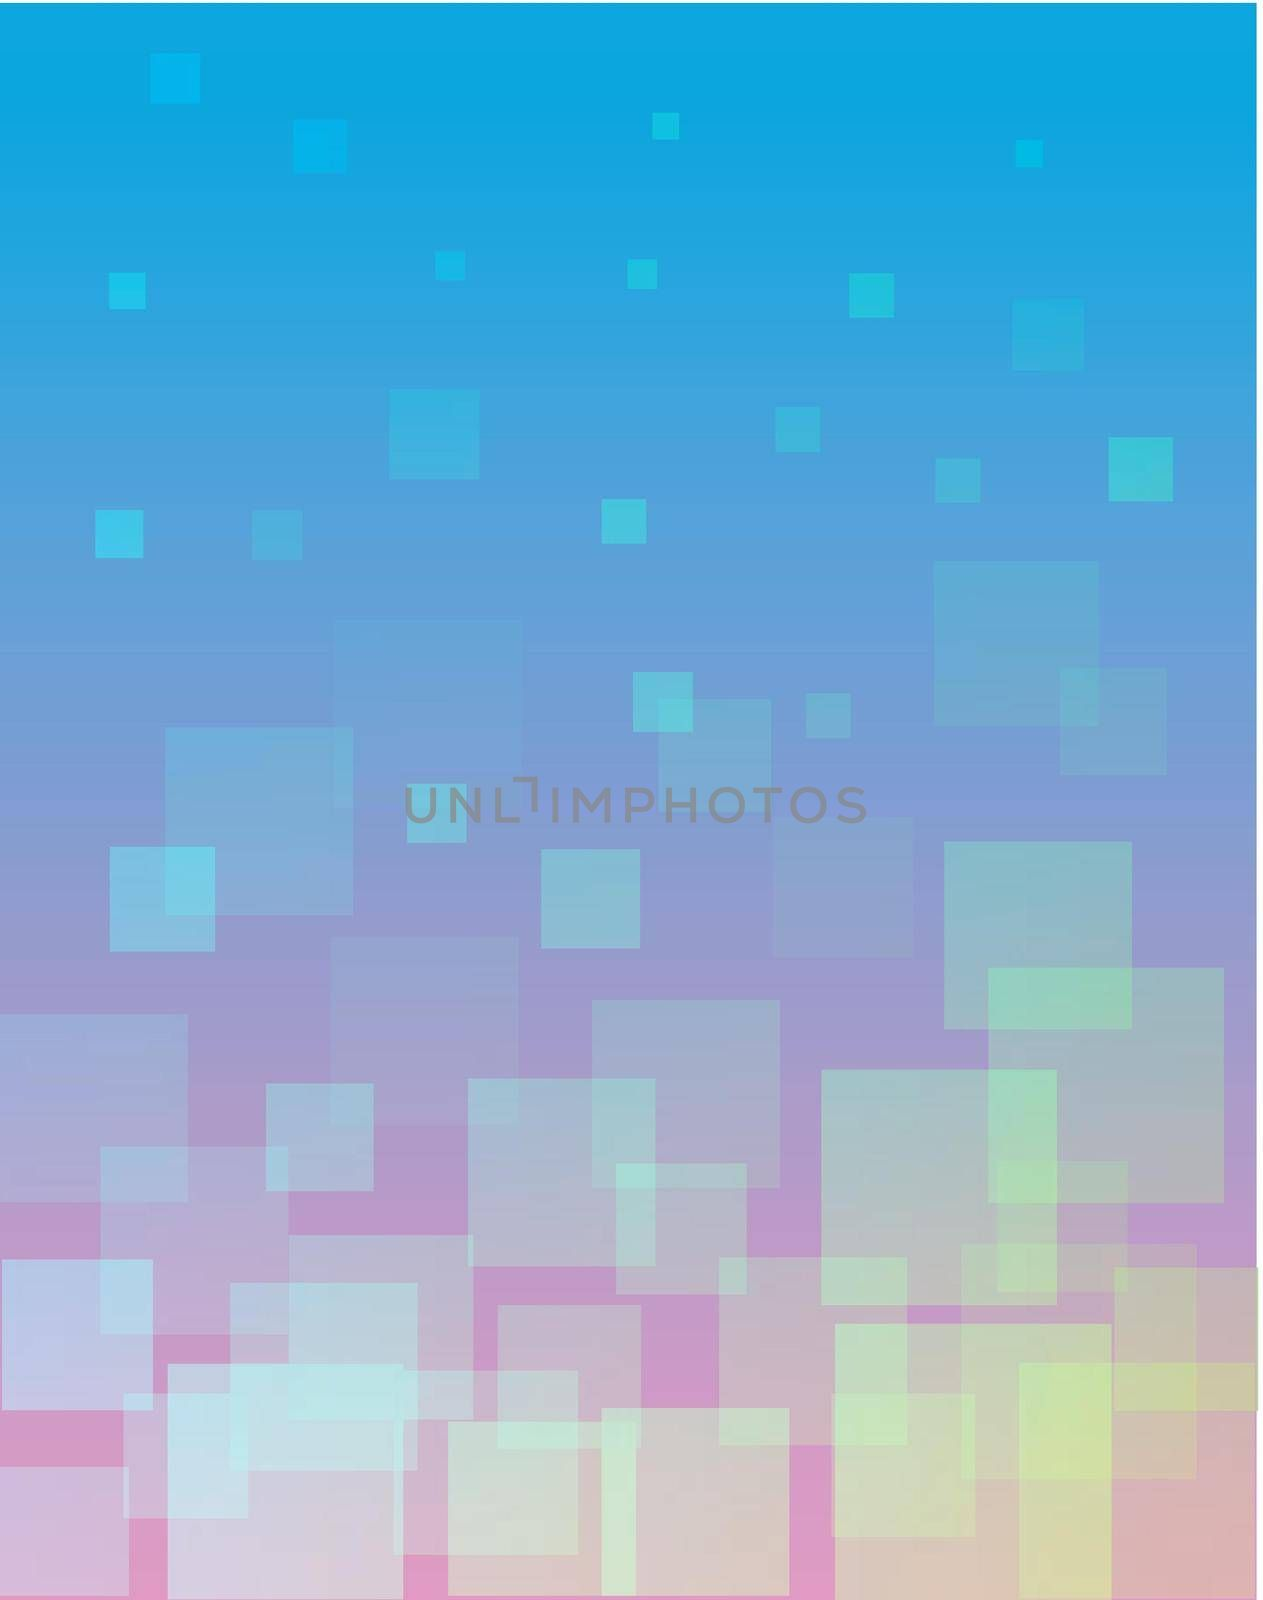 Illustration of blury shapes abstract background